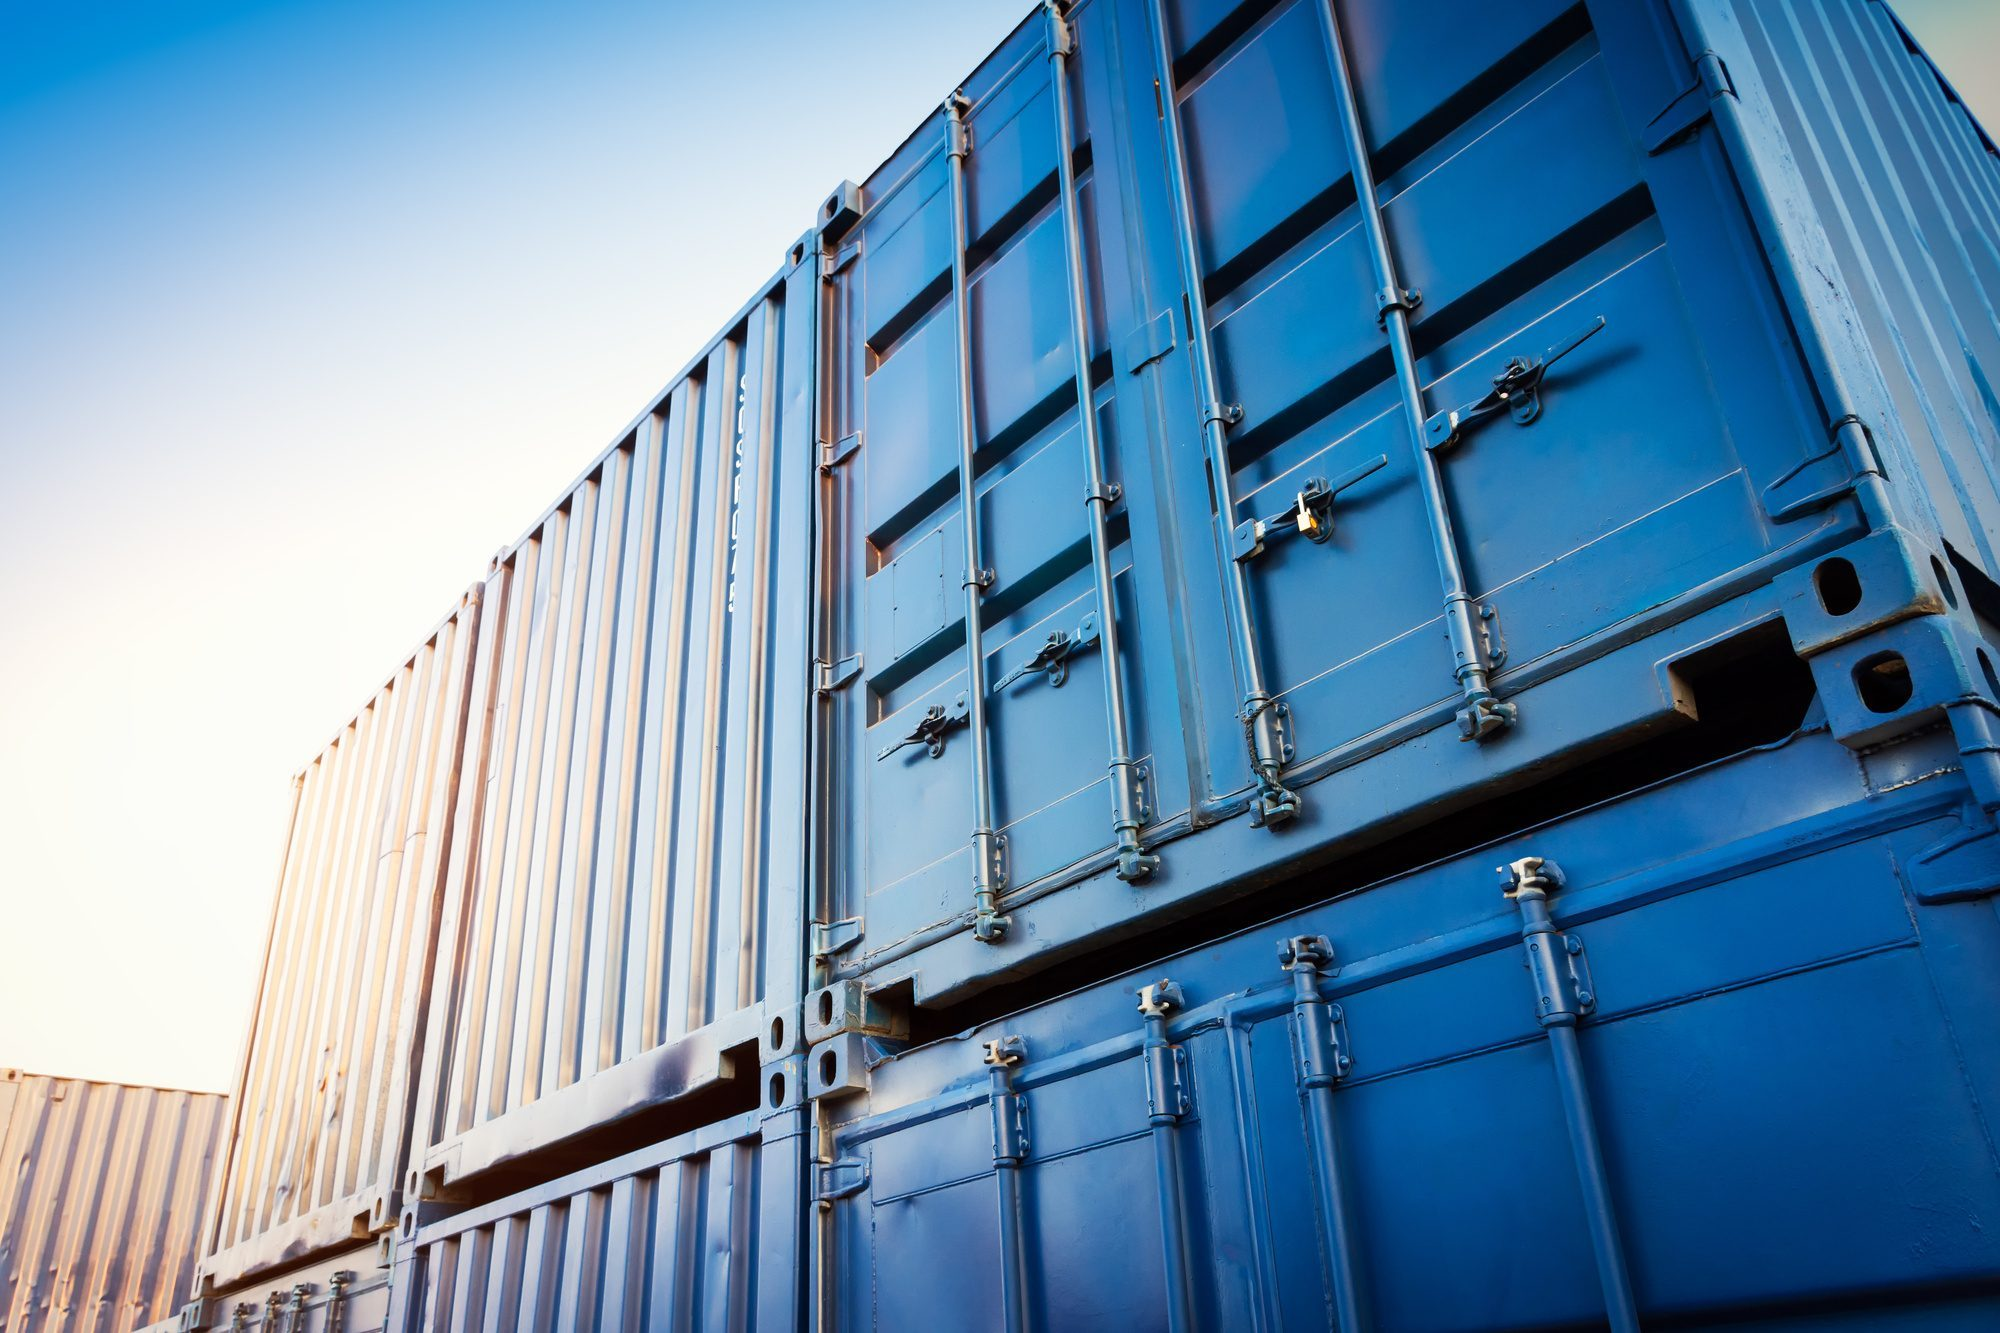 seattle containers for sale or rent